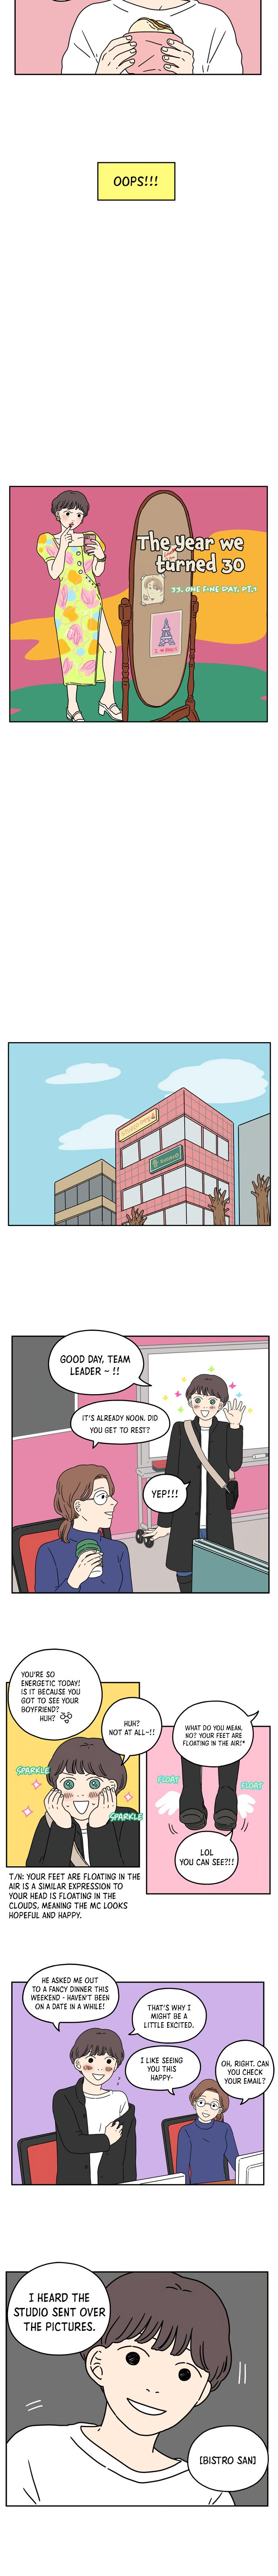 The Year We Turned 29 Chapter 33: One Fine Day (1/2) page 3 - Mangakakalots.com